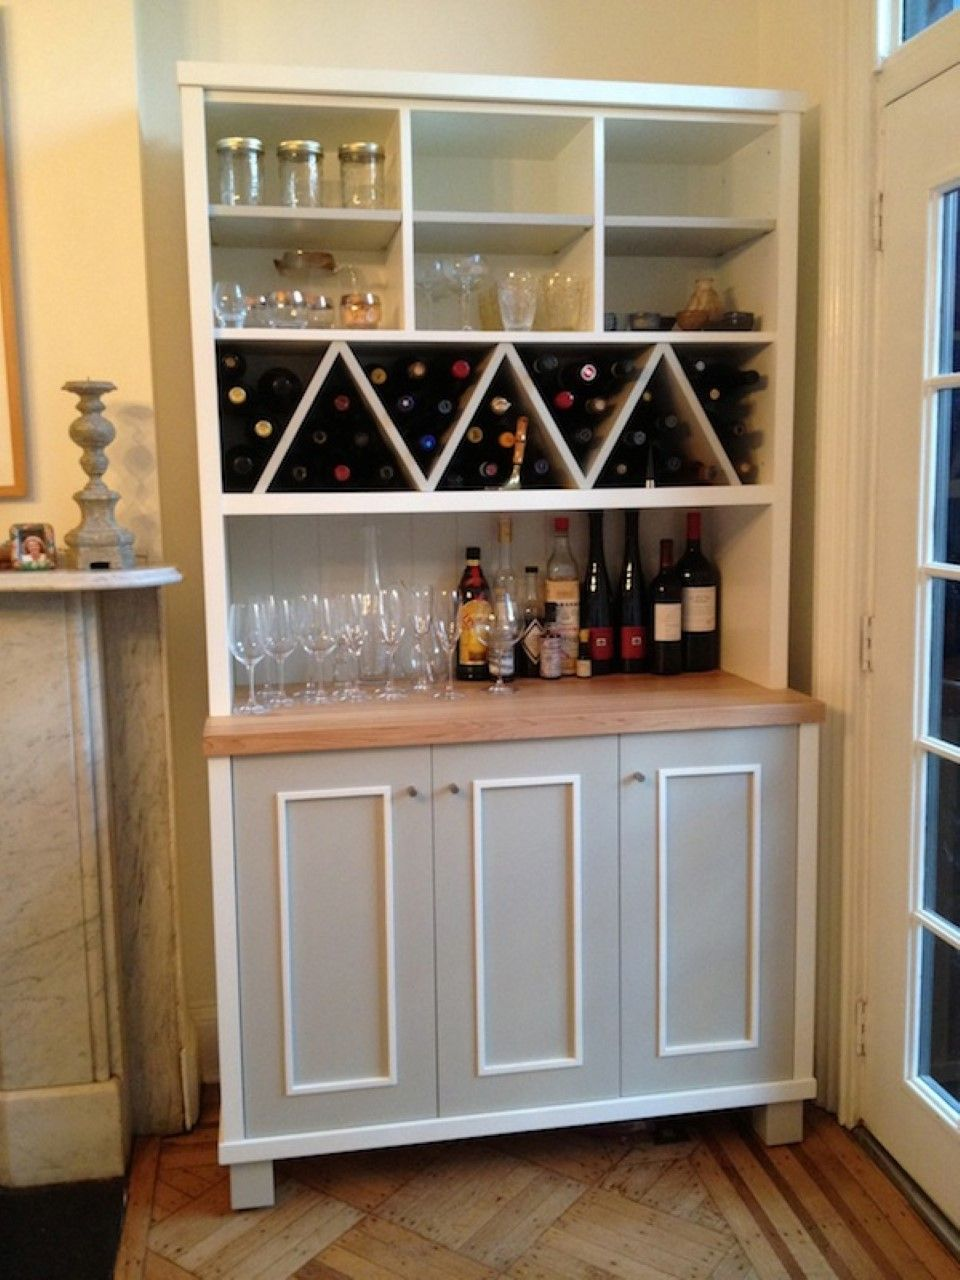 Kitchen Cabinets Storage zigzag shaped wine racks with multi purposes kitchen wall storage